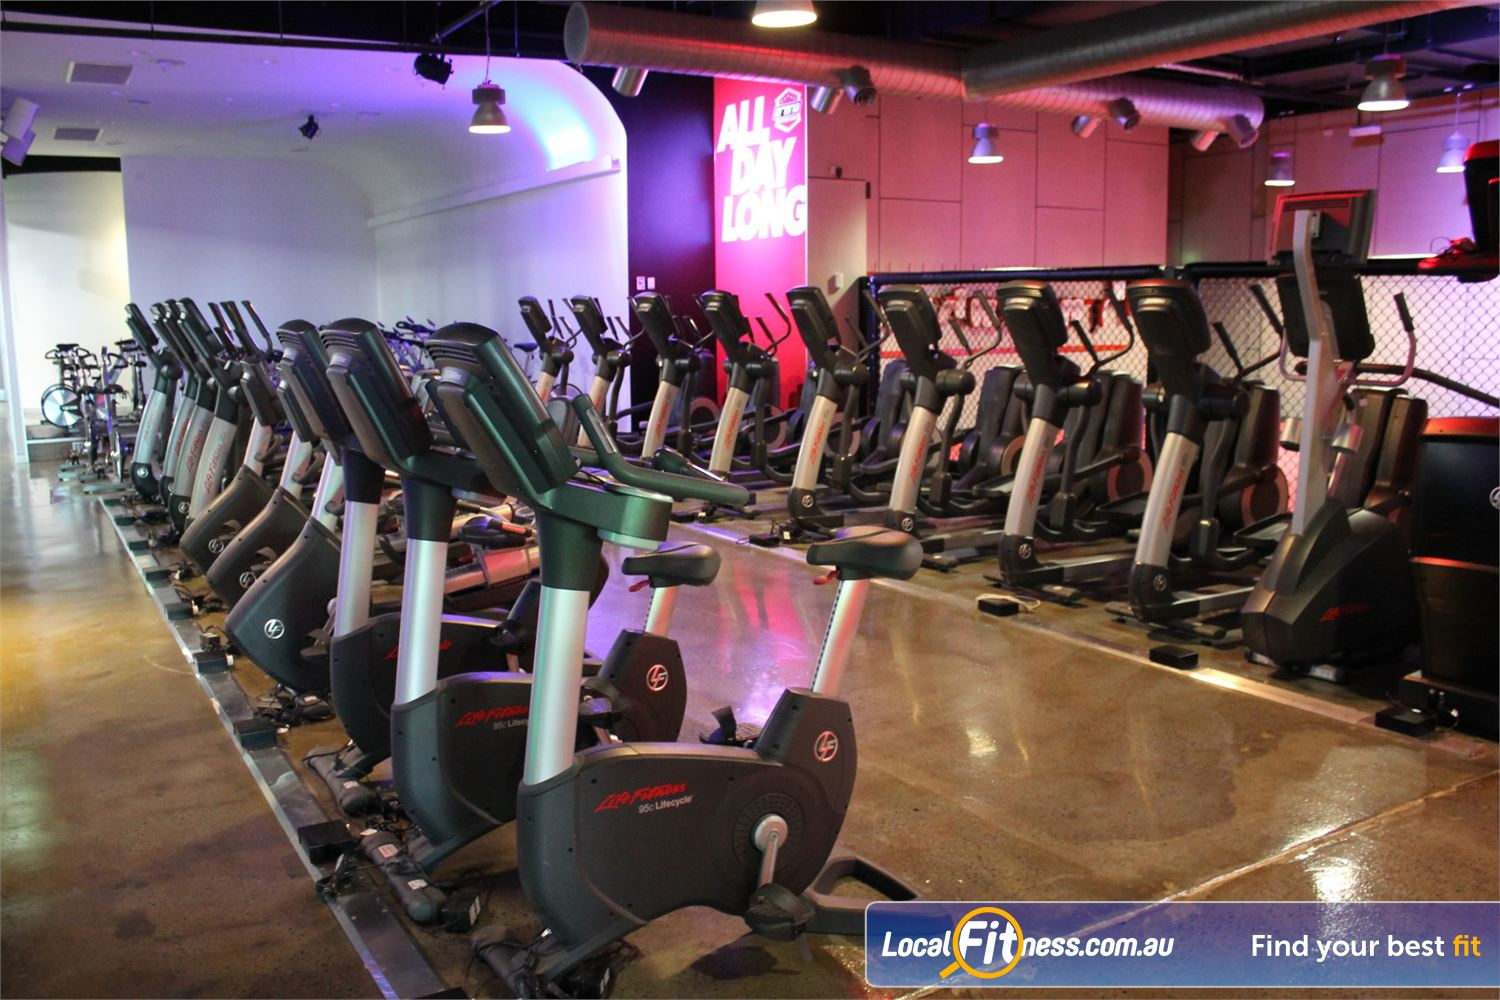 Goodlife Health Clubs Carindale Welcome to the Goodlife Superclub gym in Carindale.